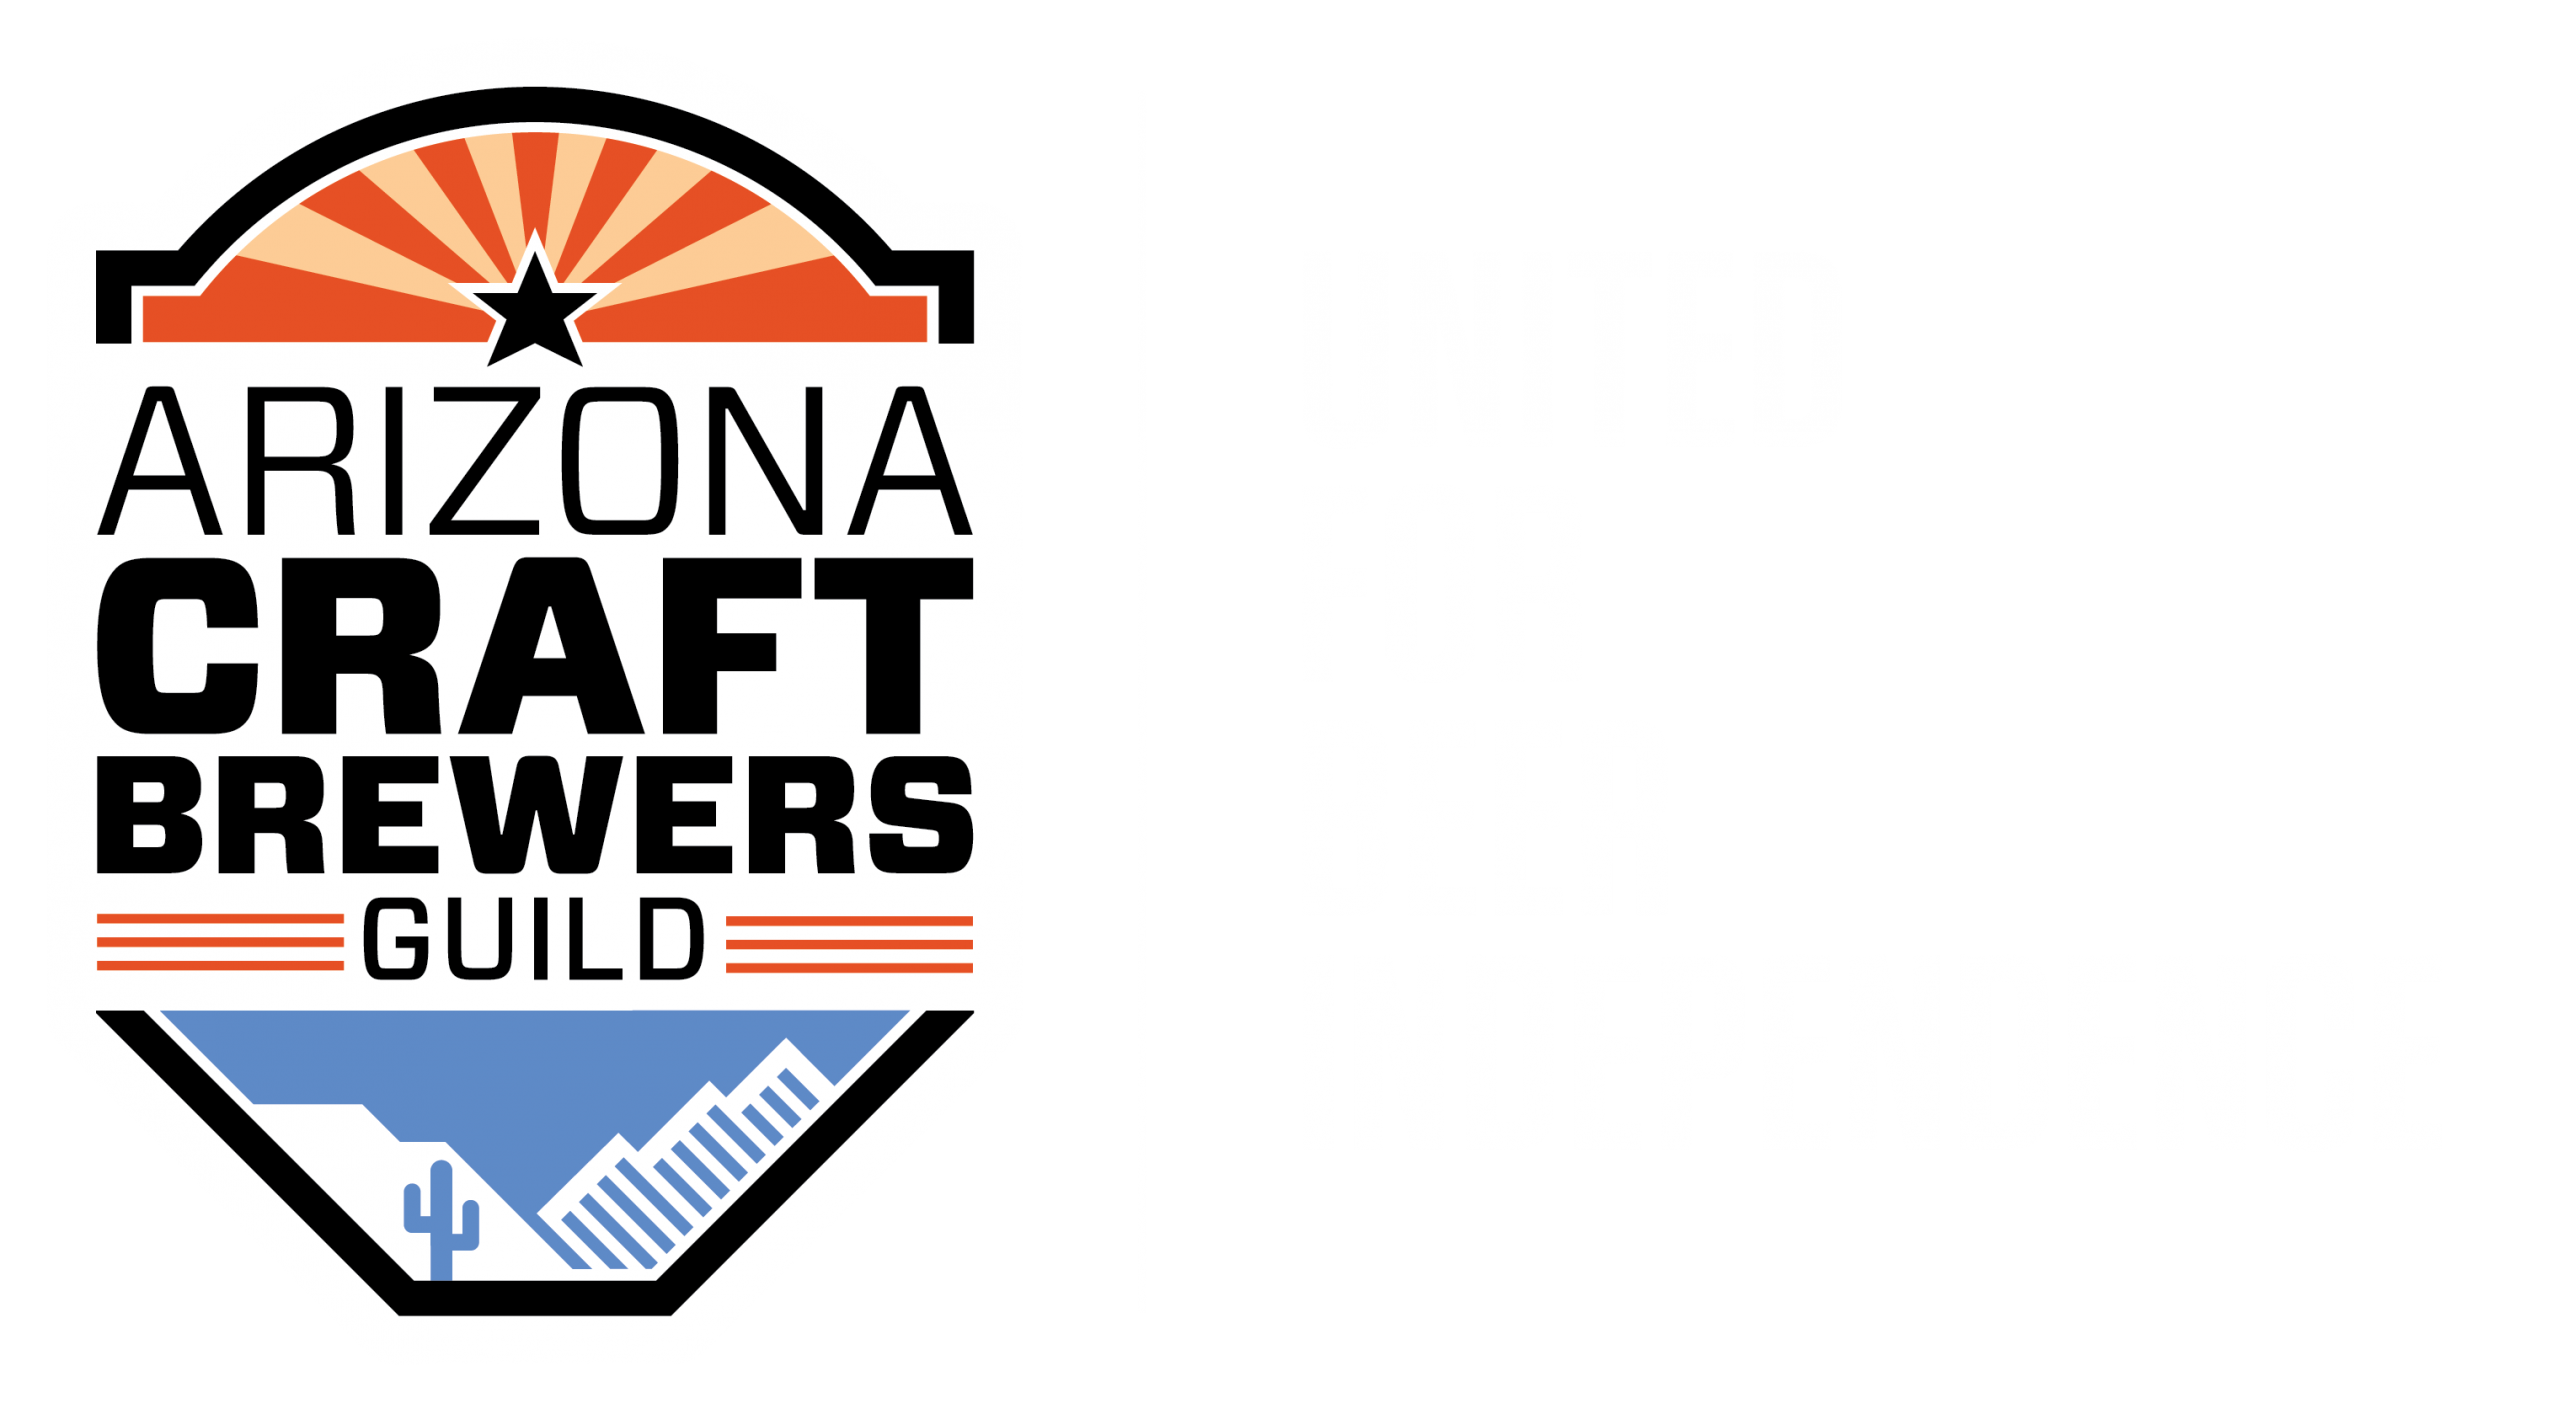 Beer Research Institute | Arizona Craft Brewers Guild